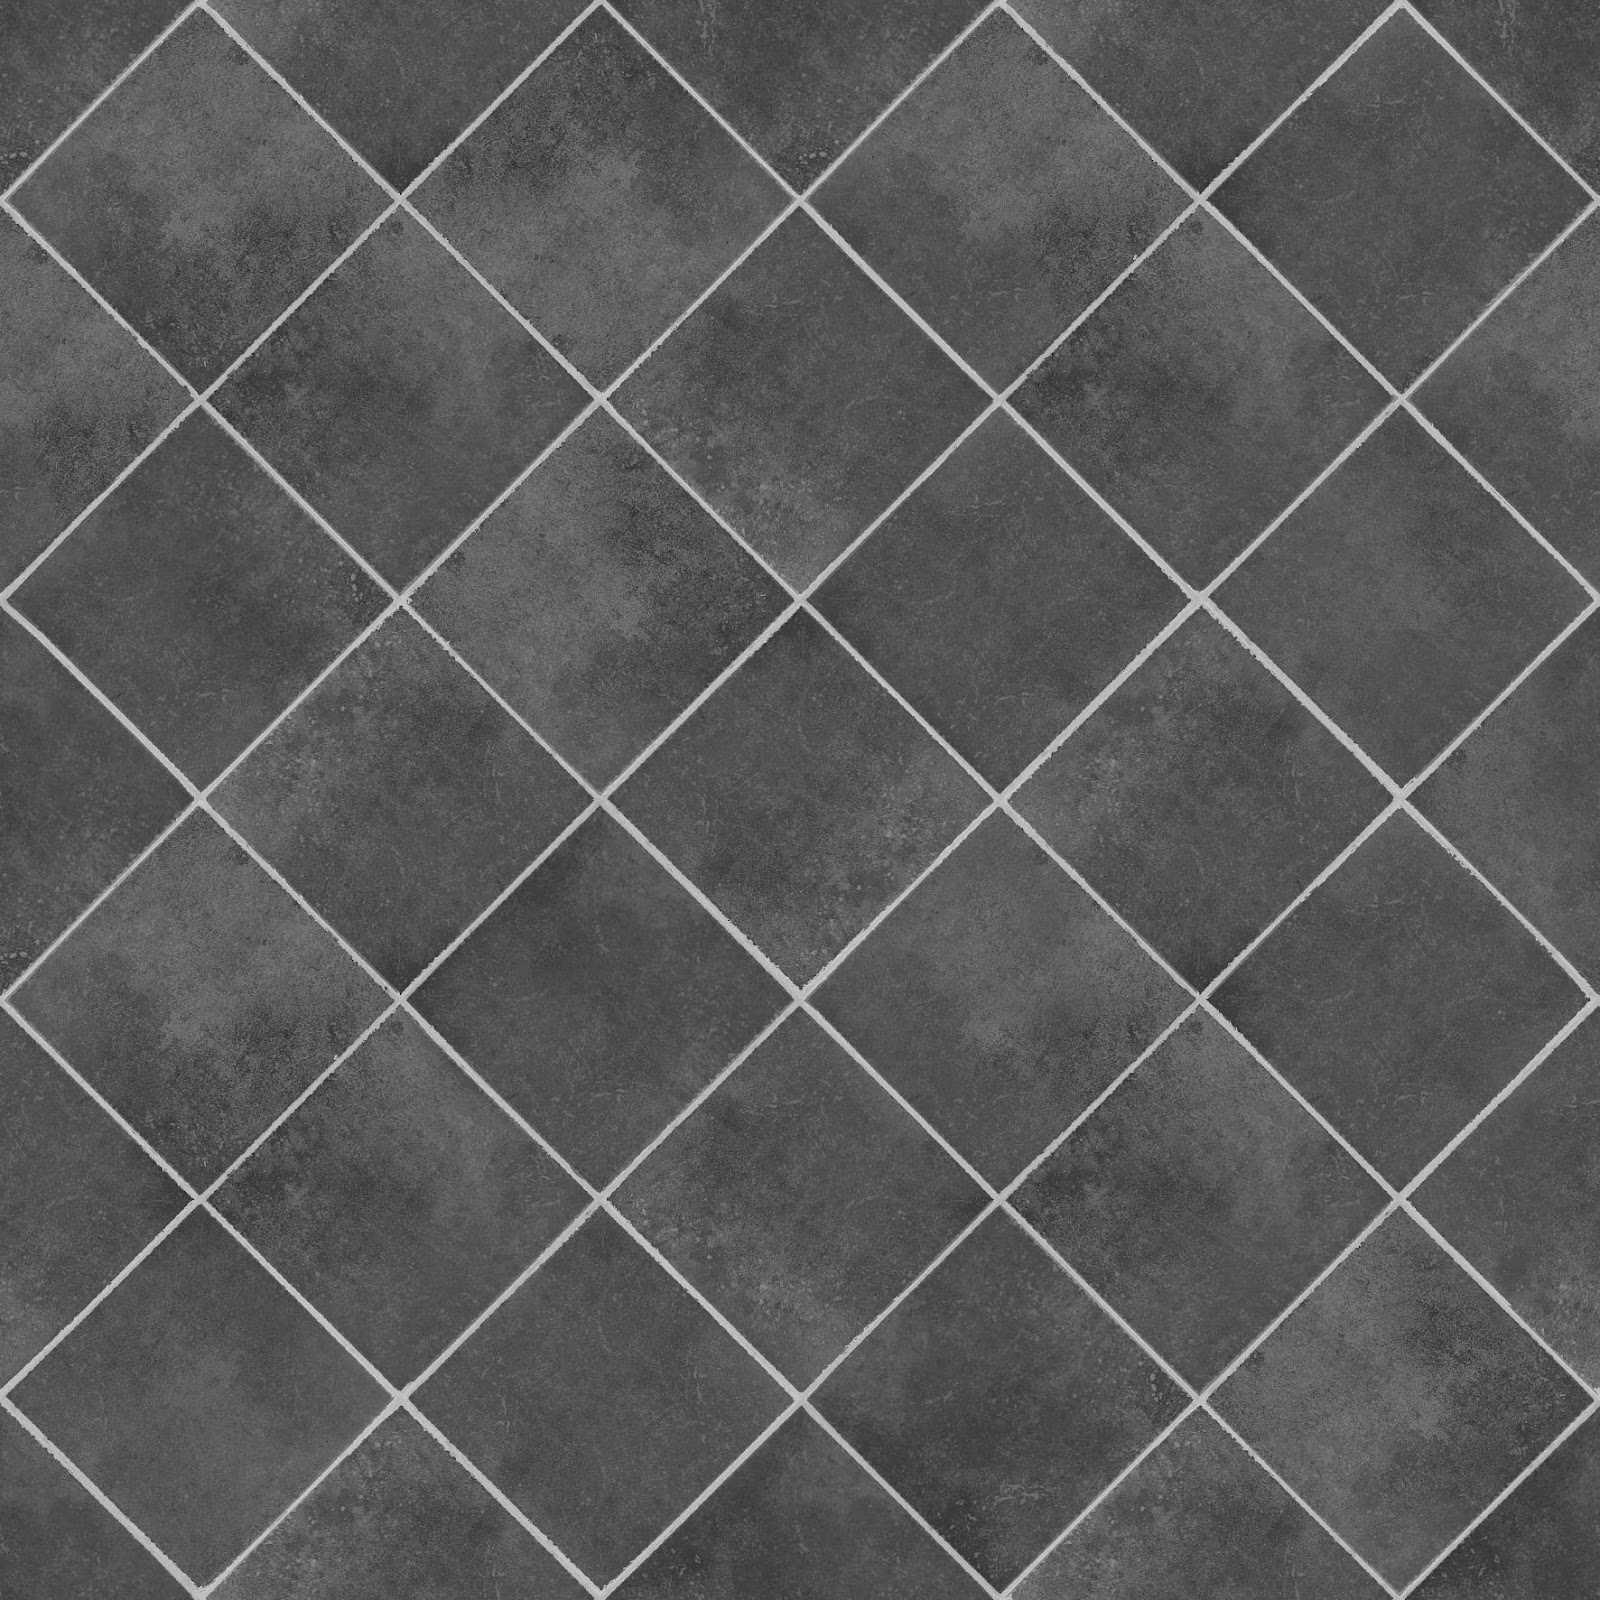 Kitchen Tile Texture Seamless emejing floor tile texture seamless images - best image 3d home